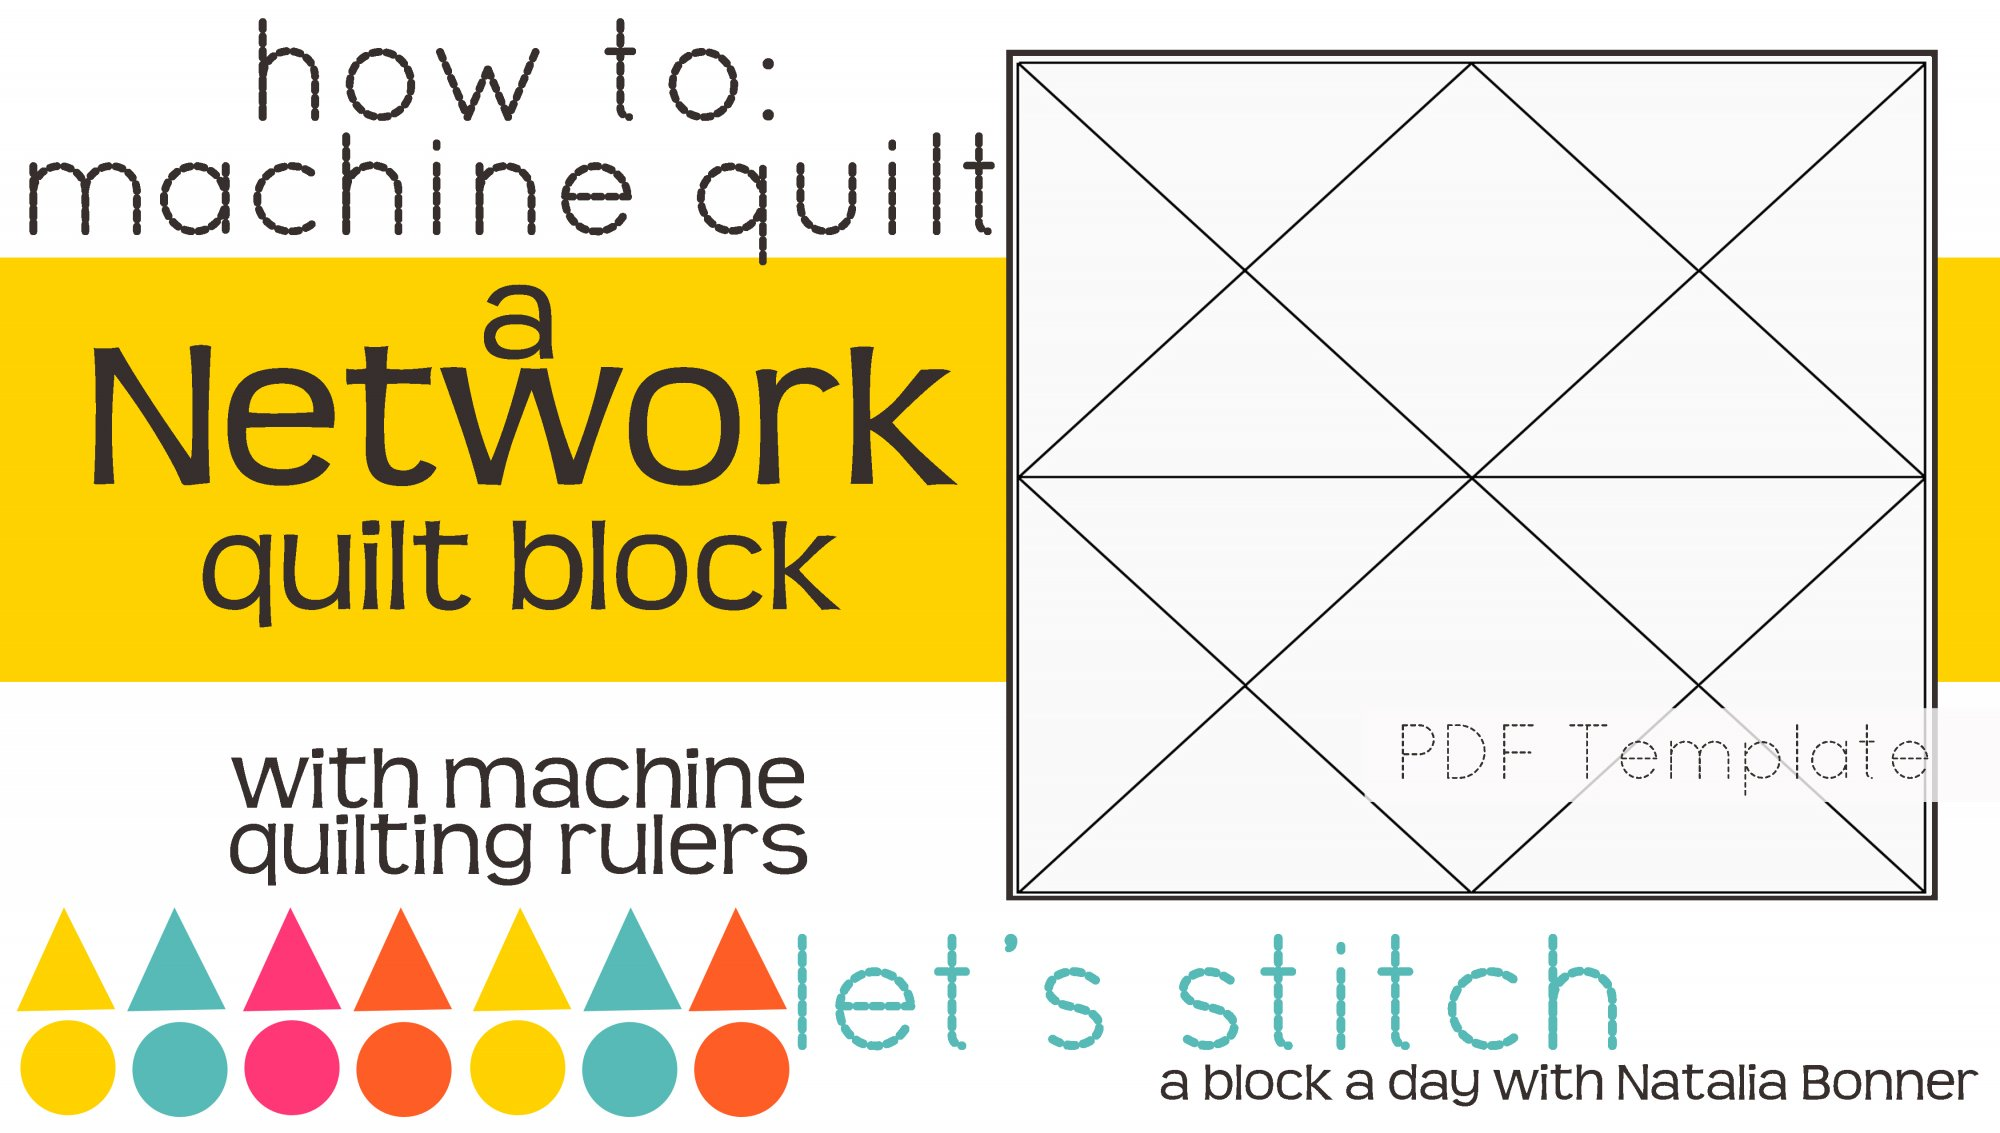 Let's Stitch - A Block a Day With Natalia Bonner - PDF - Network